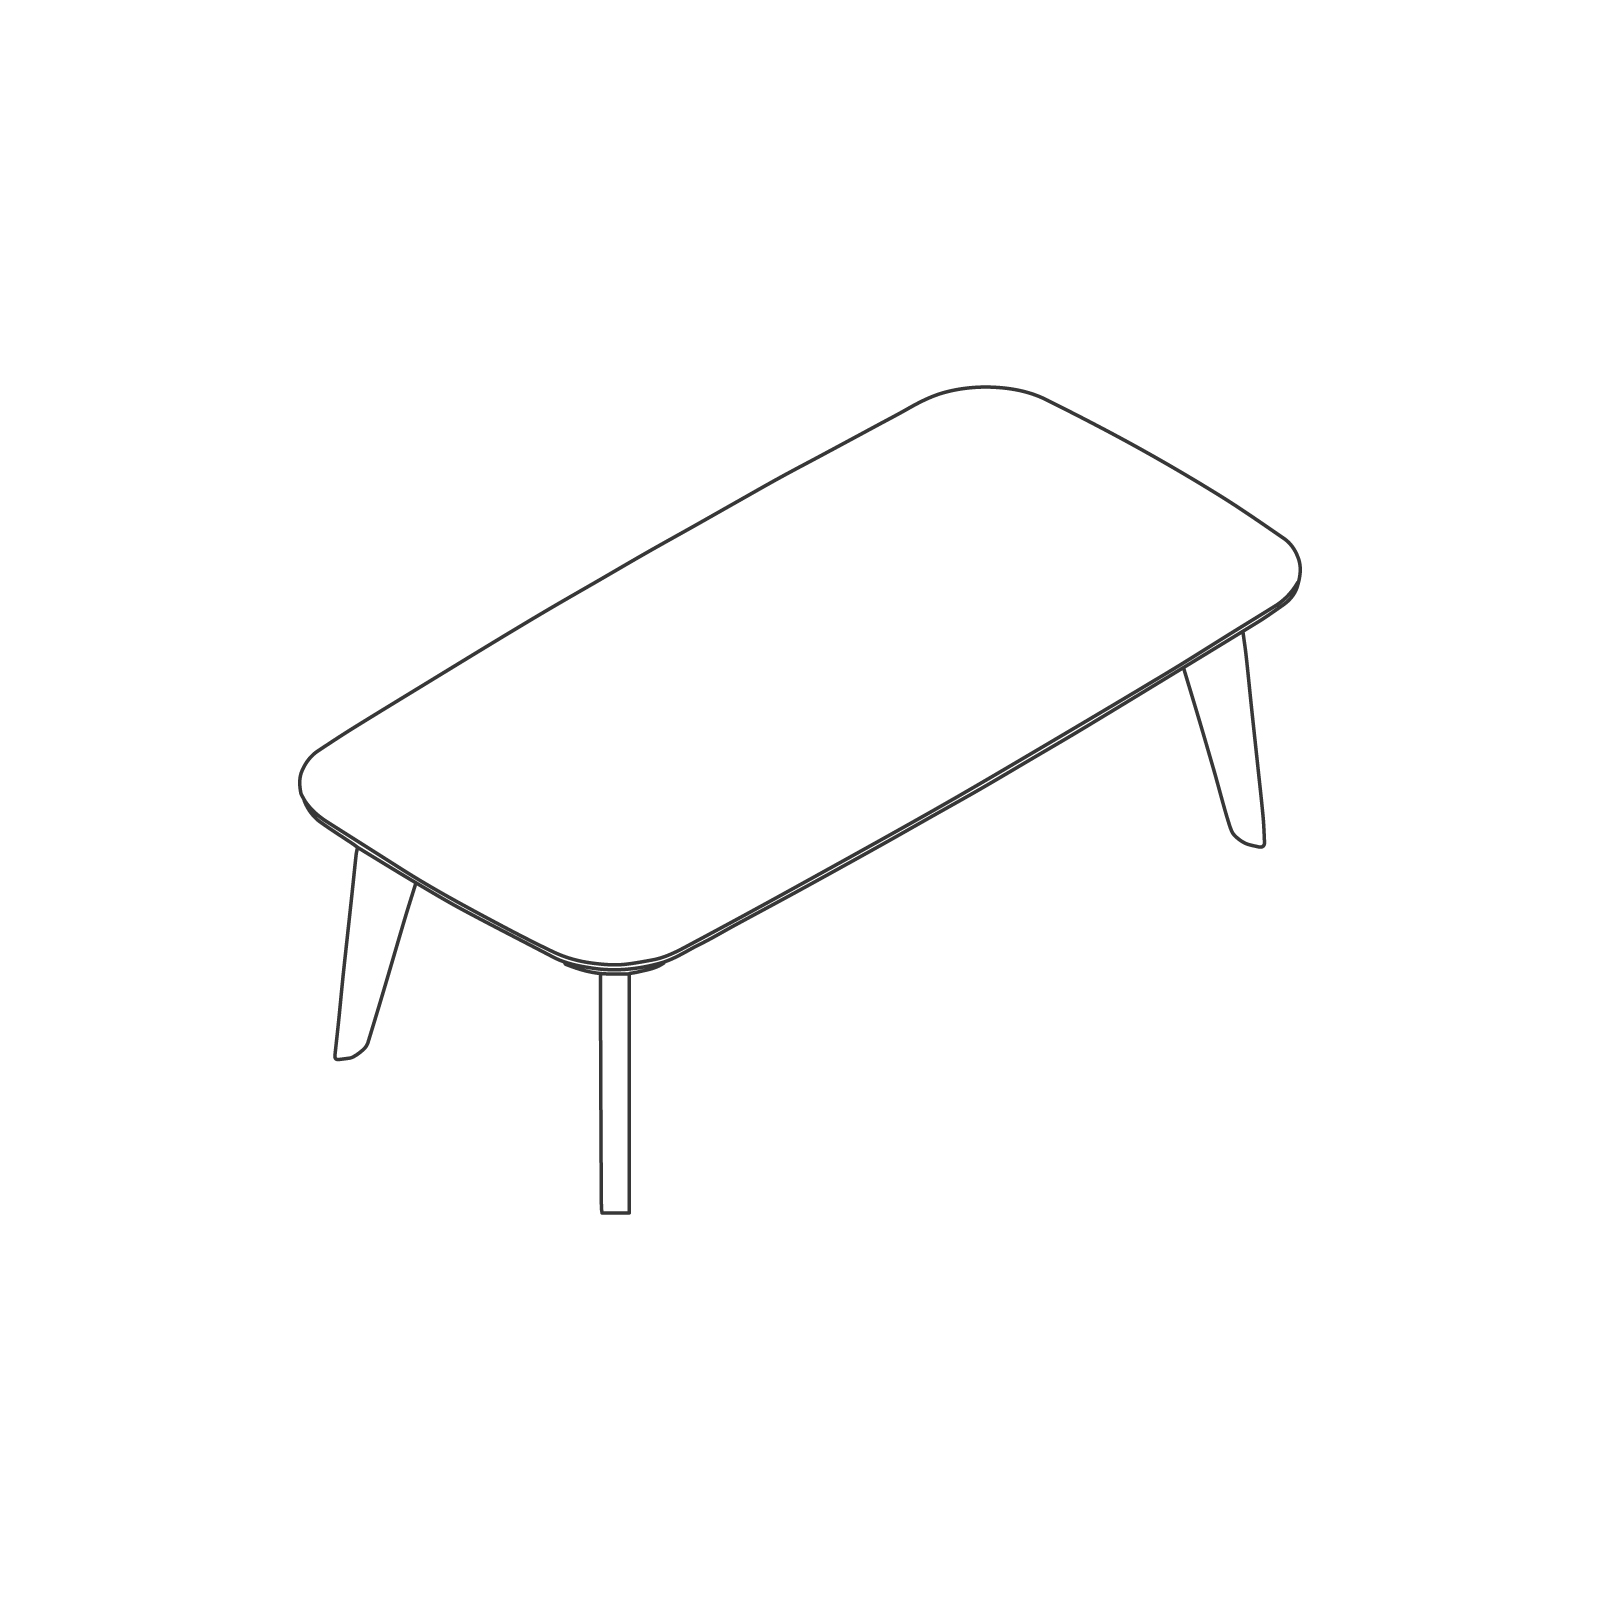 A line drawing of Dalby Coffee Table–Rectangular.